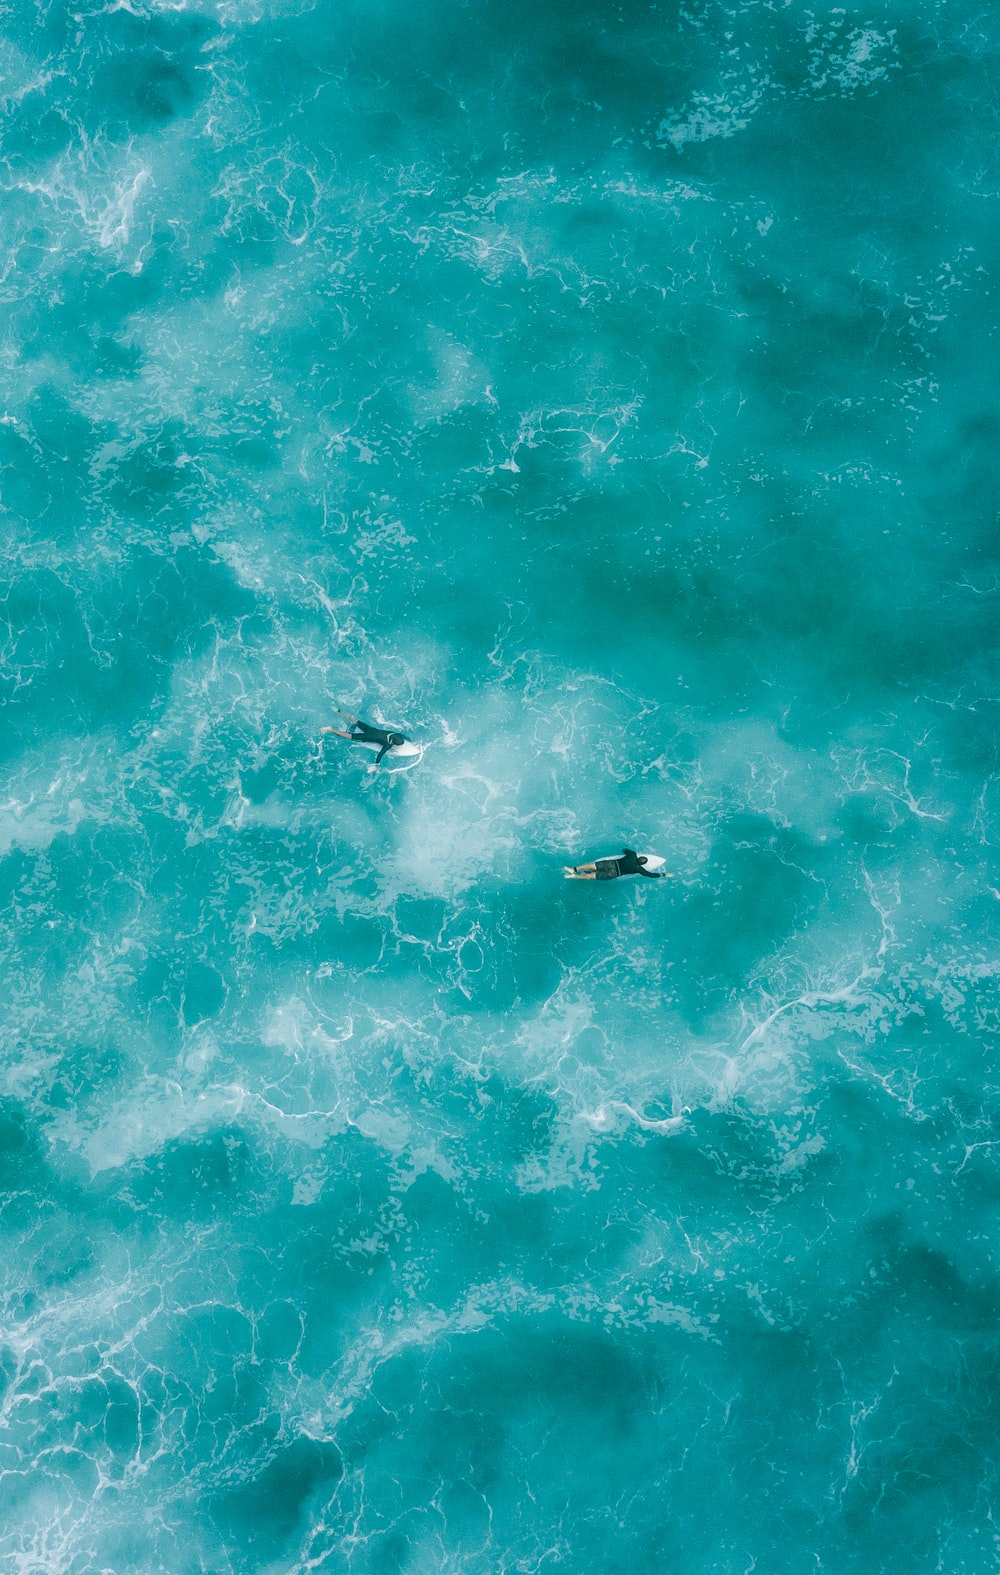 two people surfing on water